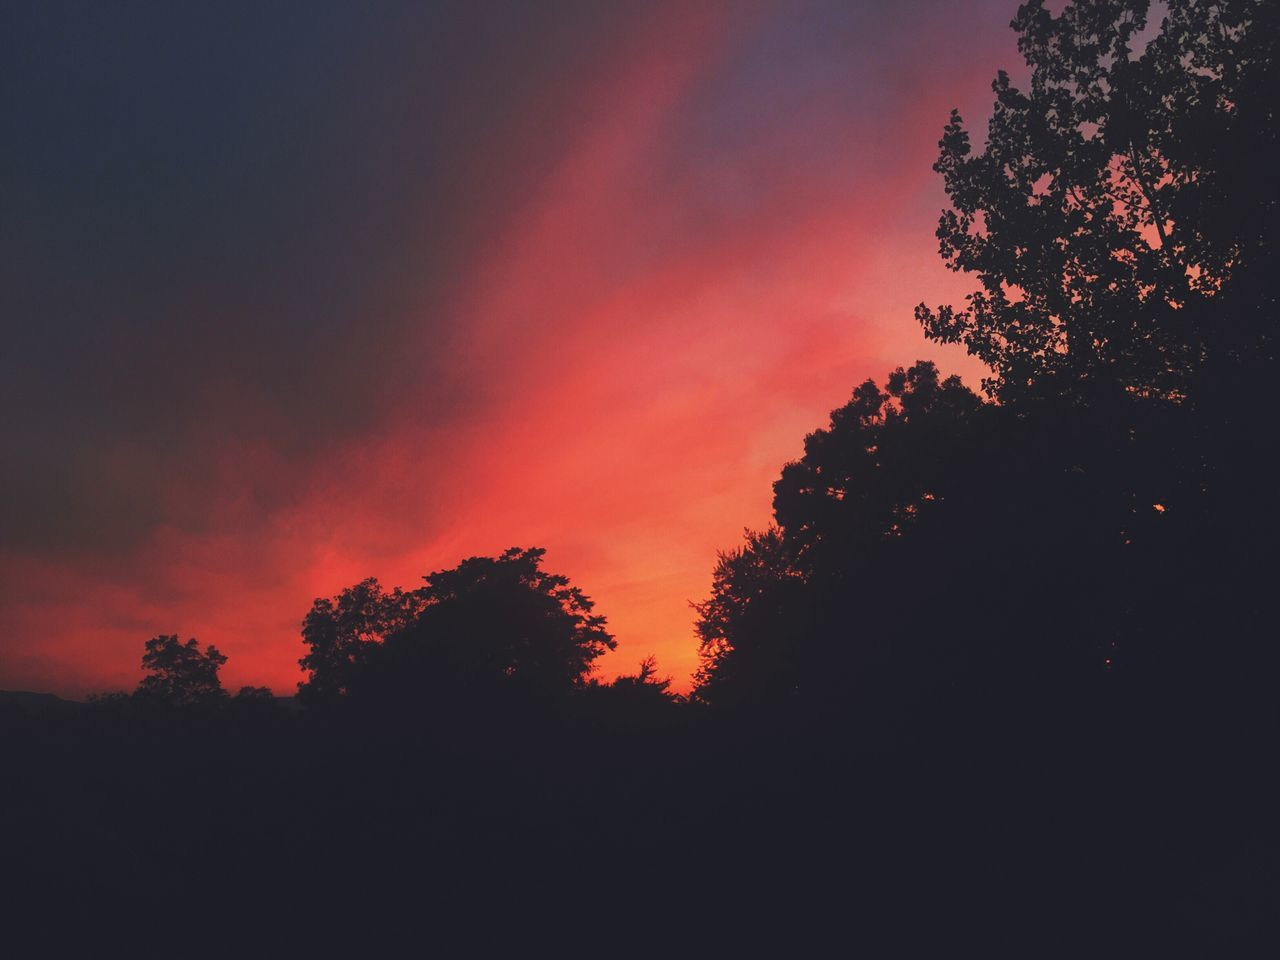 tree, sunset, silhouette, beauty in nature, nature, tranquility, tranquil scene, scenics, no people, dark, sky, outdoors, growth, day